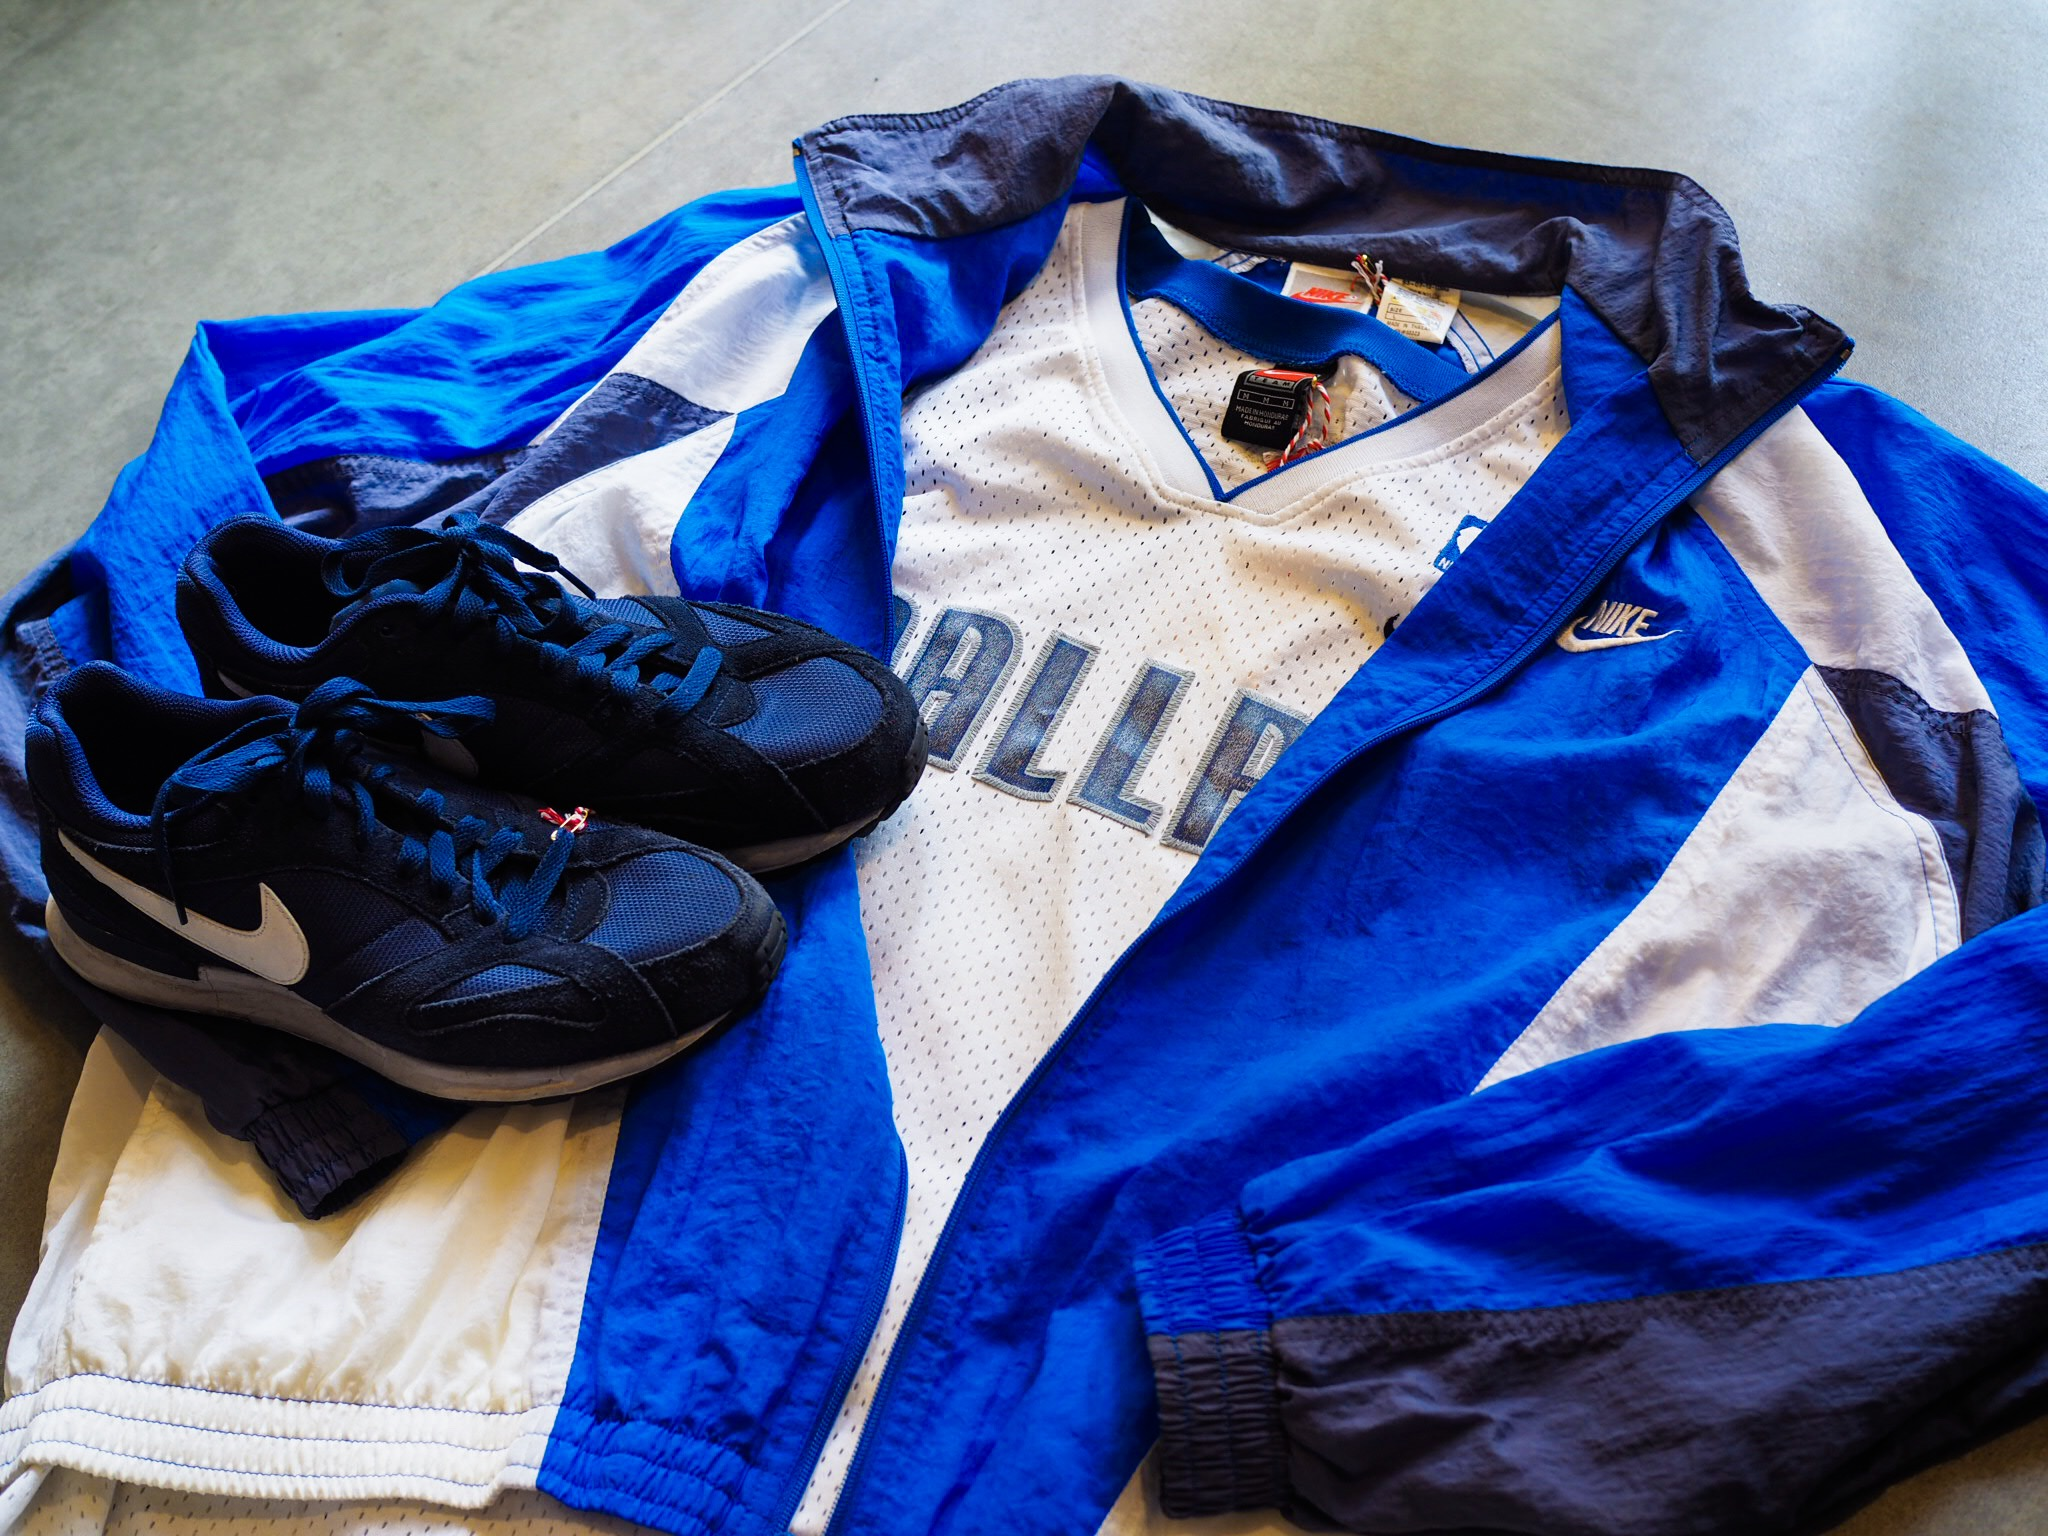 Something blue? A Nike NBA Jersey, classic sports jacket combo is versatile and bright. Pair with jeans, joggers, shorts in summer and while your on our Nike train, team the outfit up with some Nike Air Pegasus trainers.